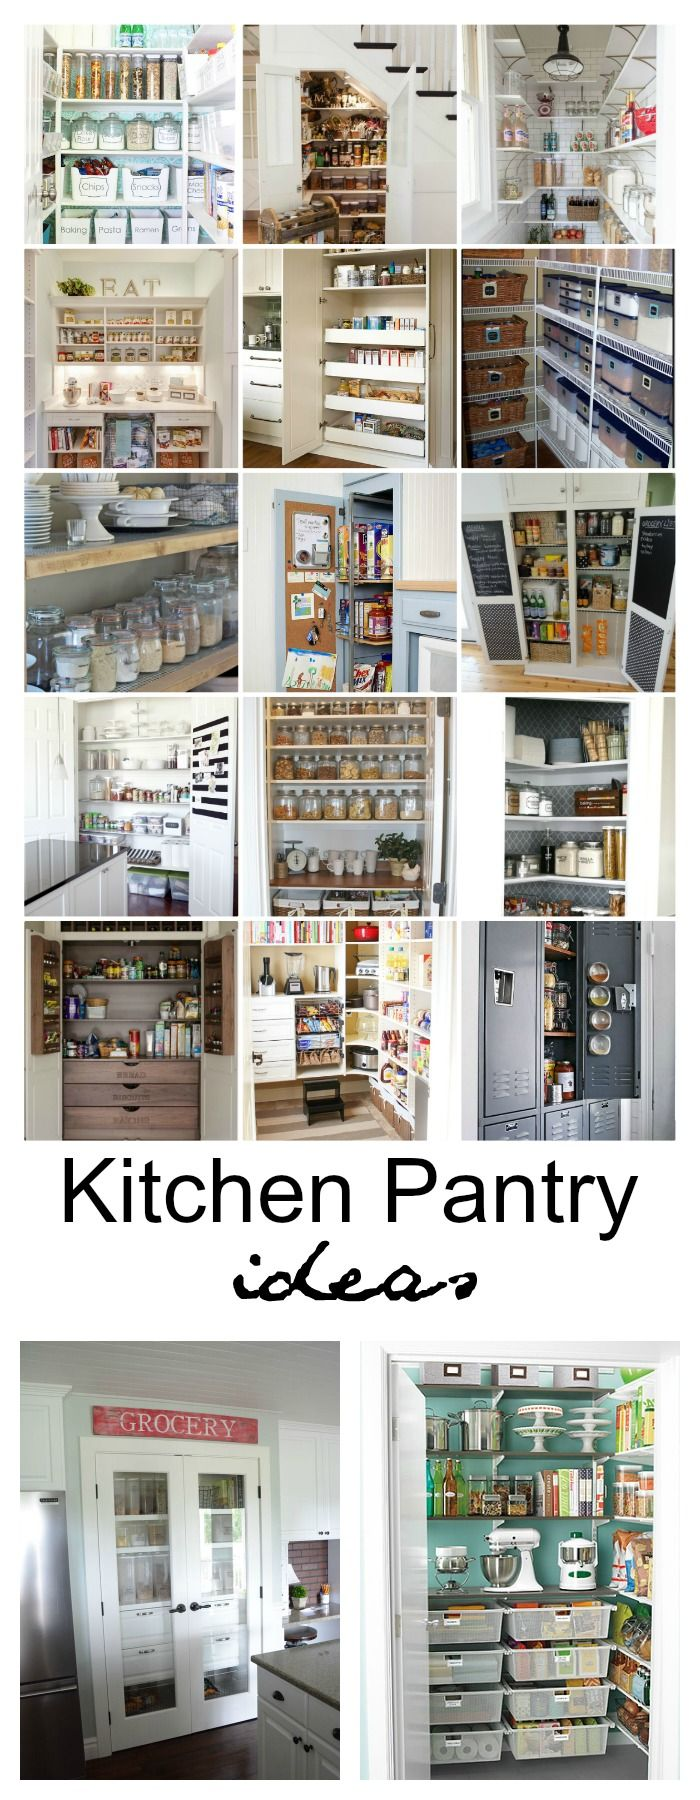 organized kitchen pantry ideas k che haushalte und. Black Bedroom Furniture Sets. Home Design Ideas